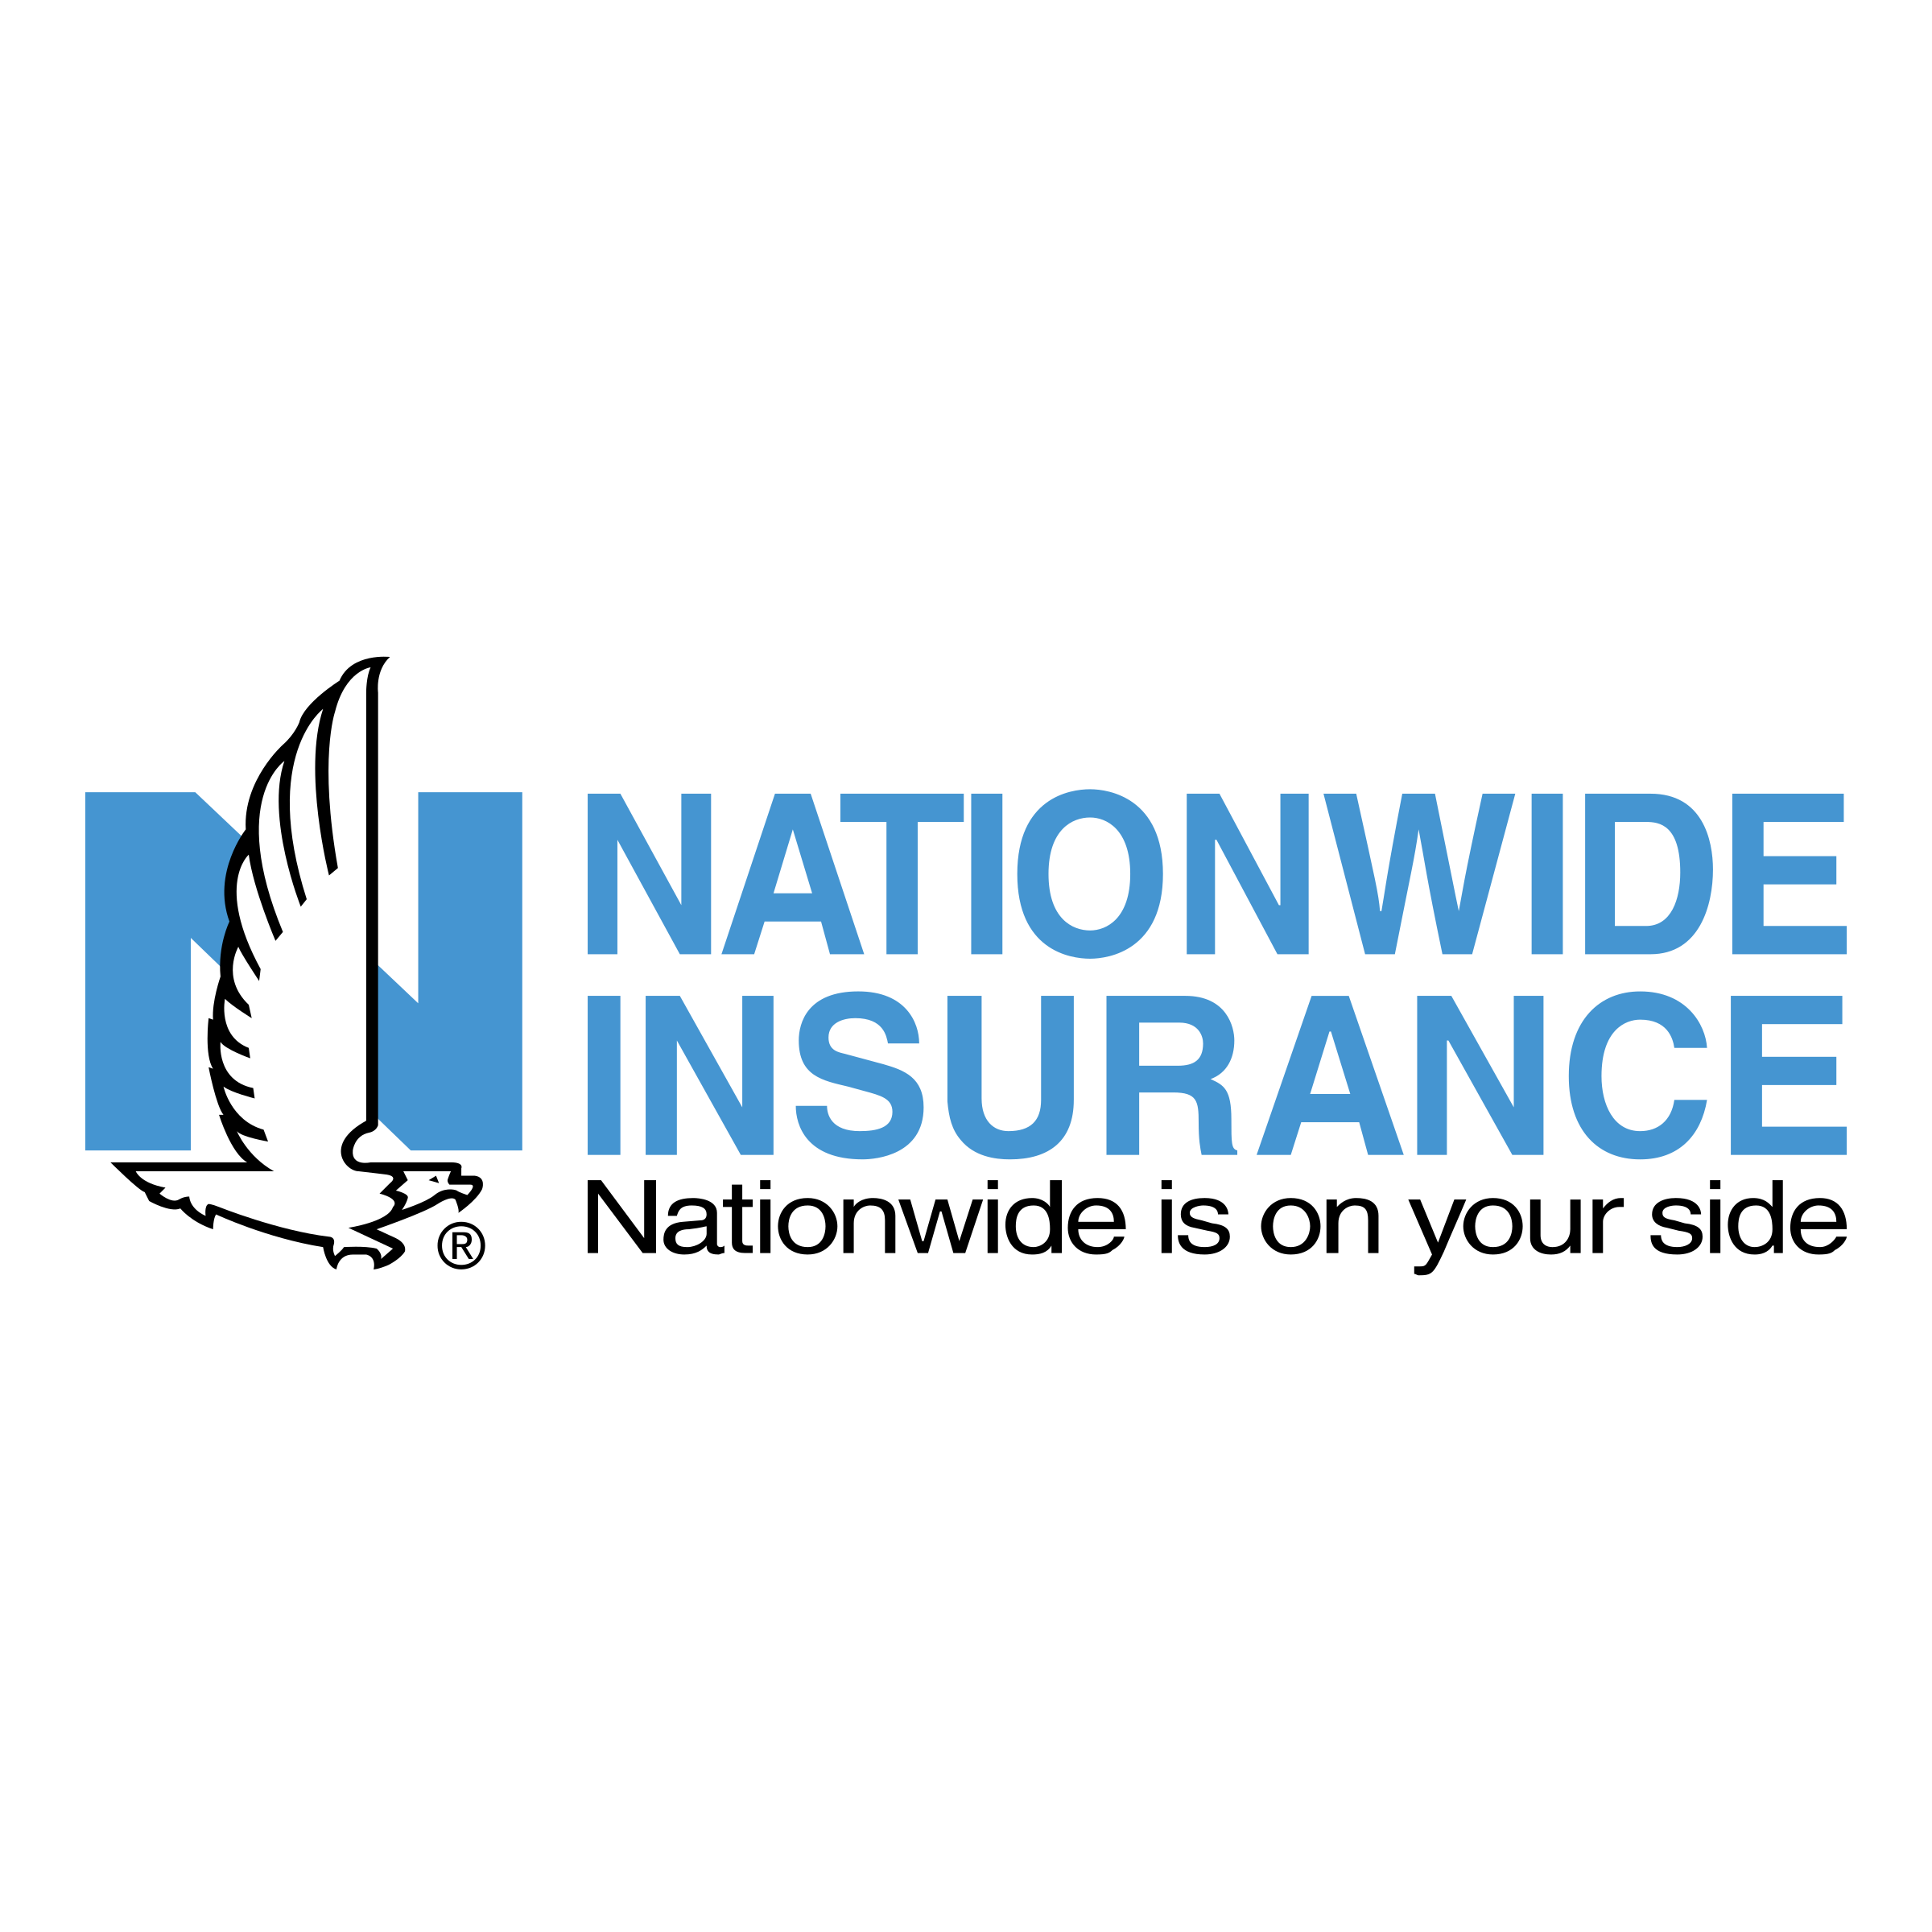 Nationwide Insurance Logo PNG Transparent & SVG Vector.